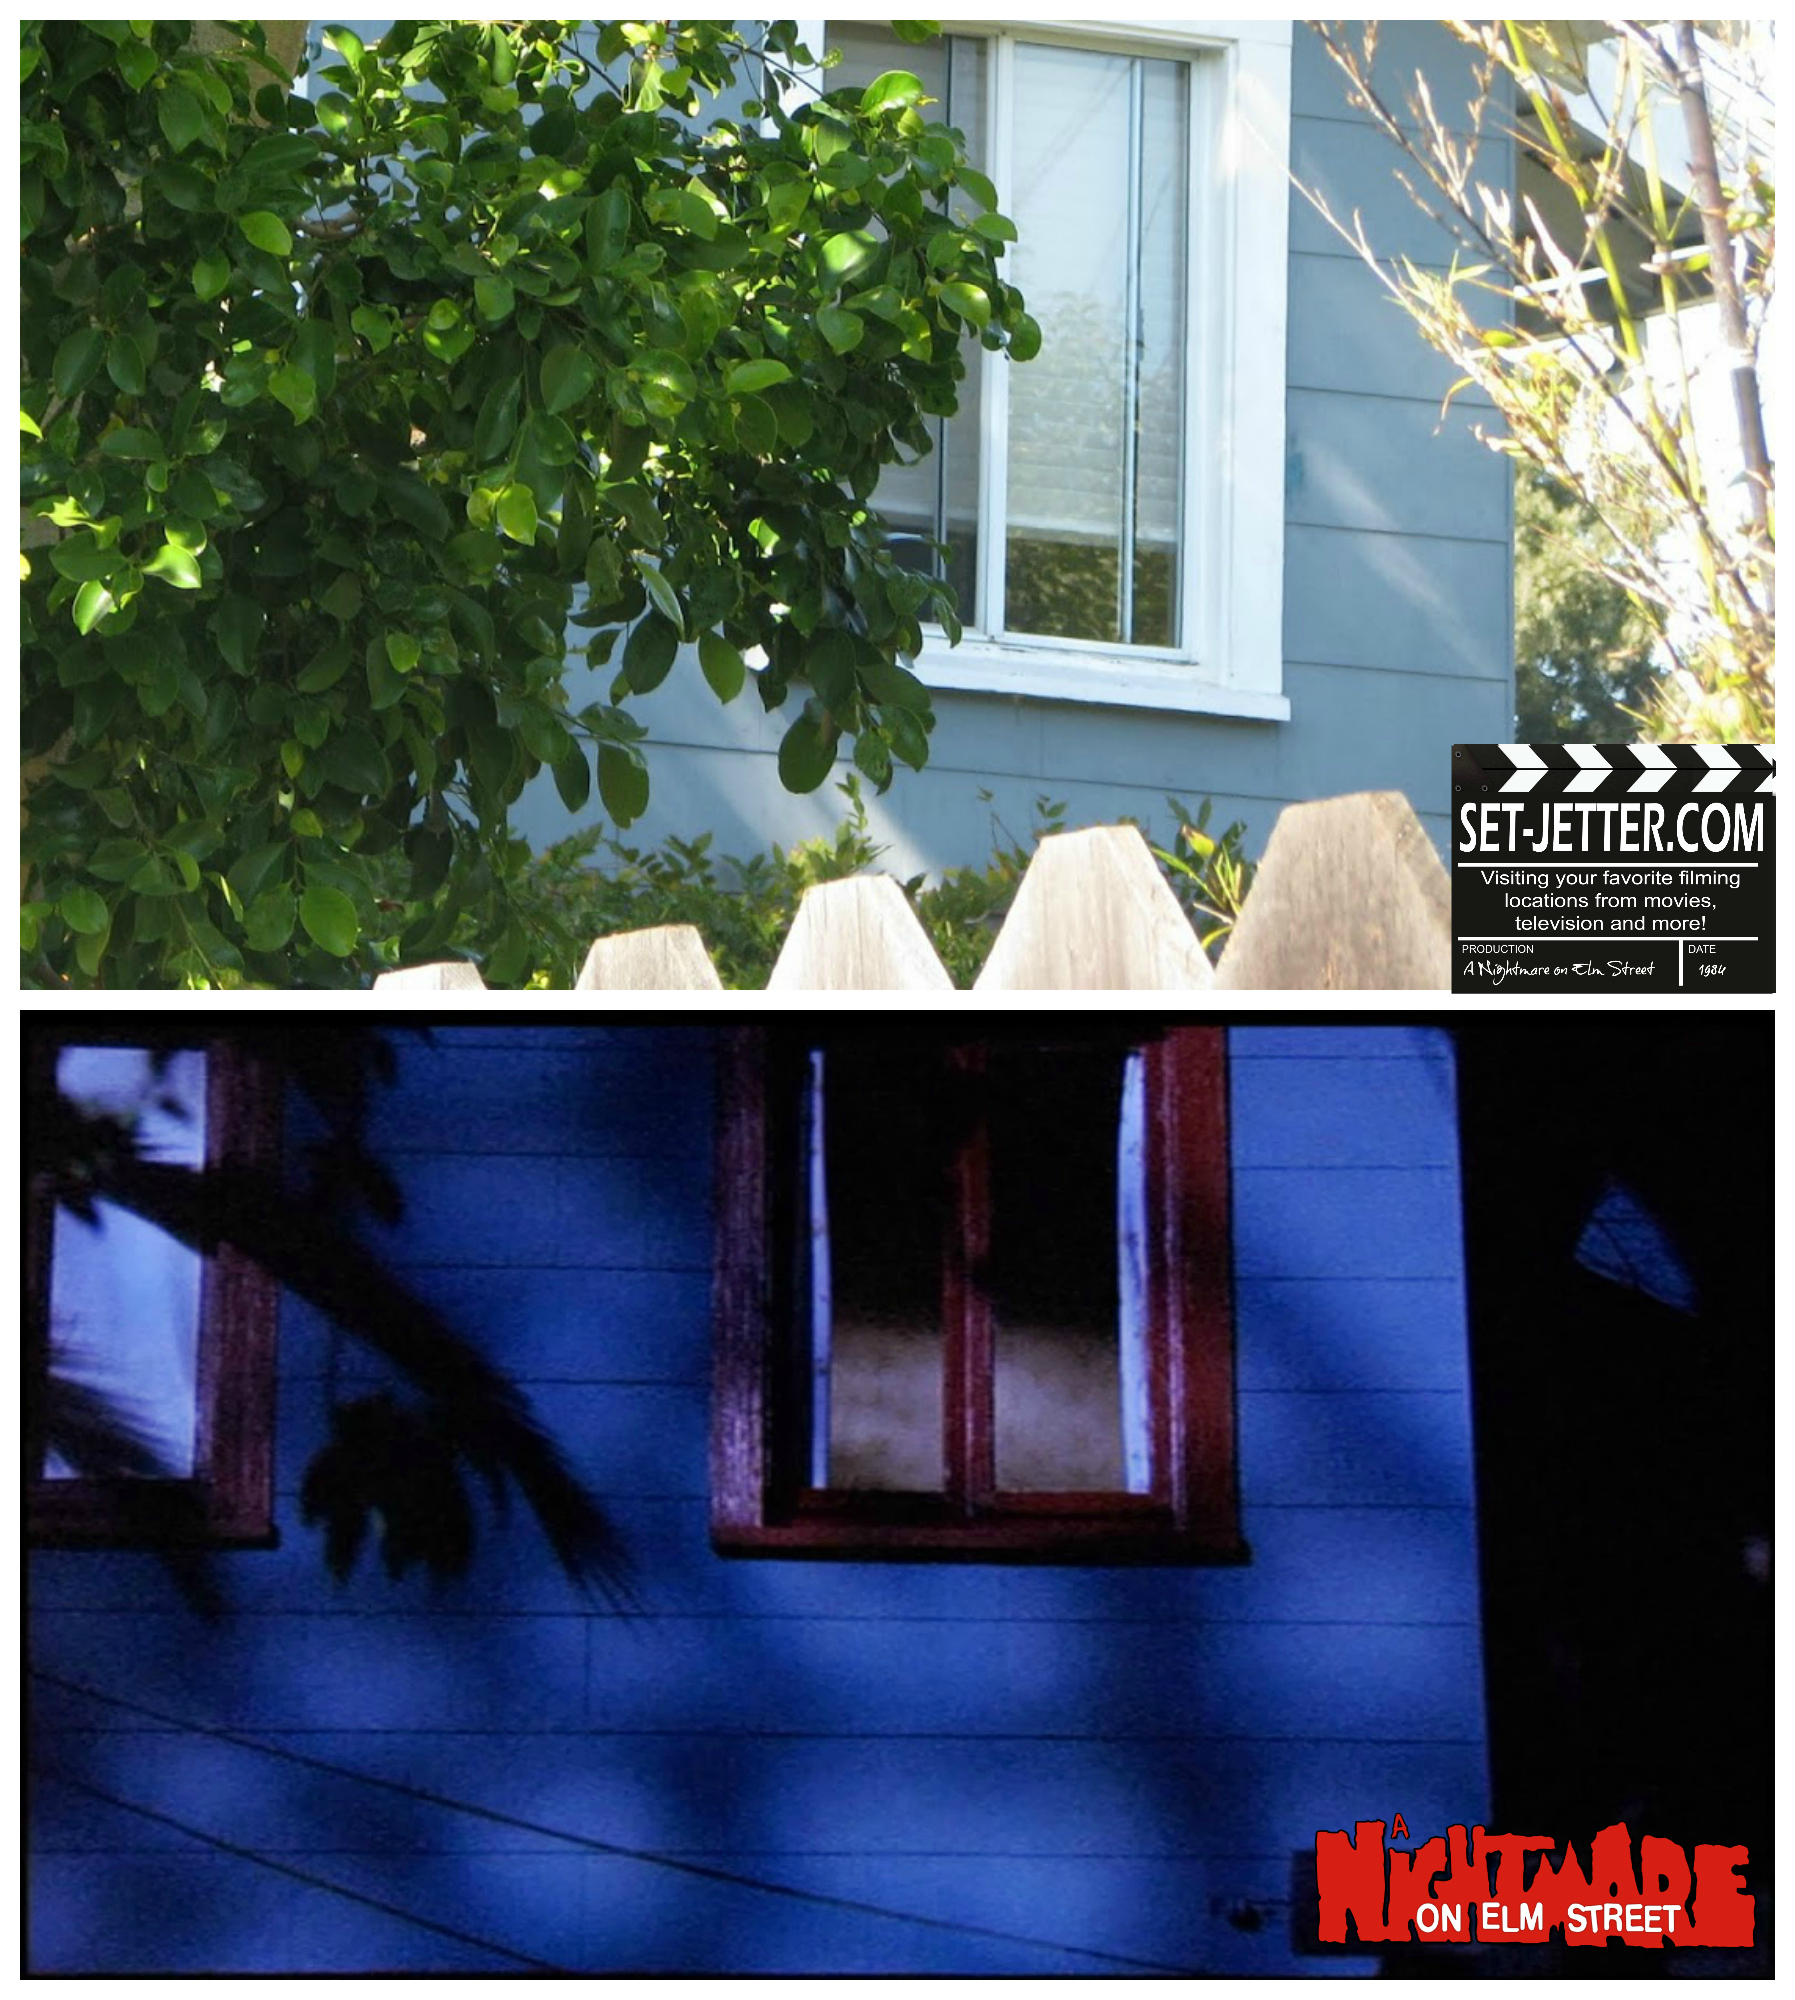 Nightmare on Elm Street comparison 10.jpg